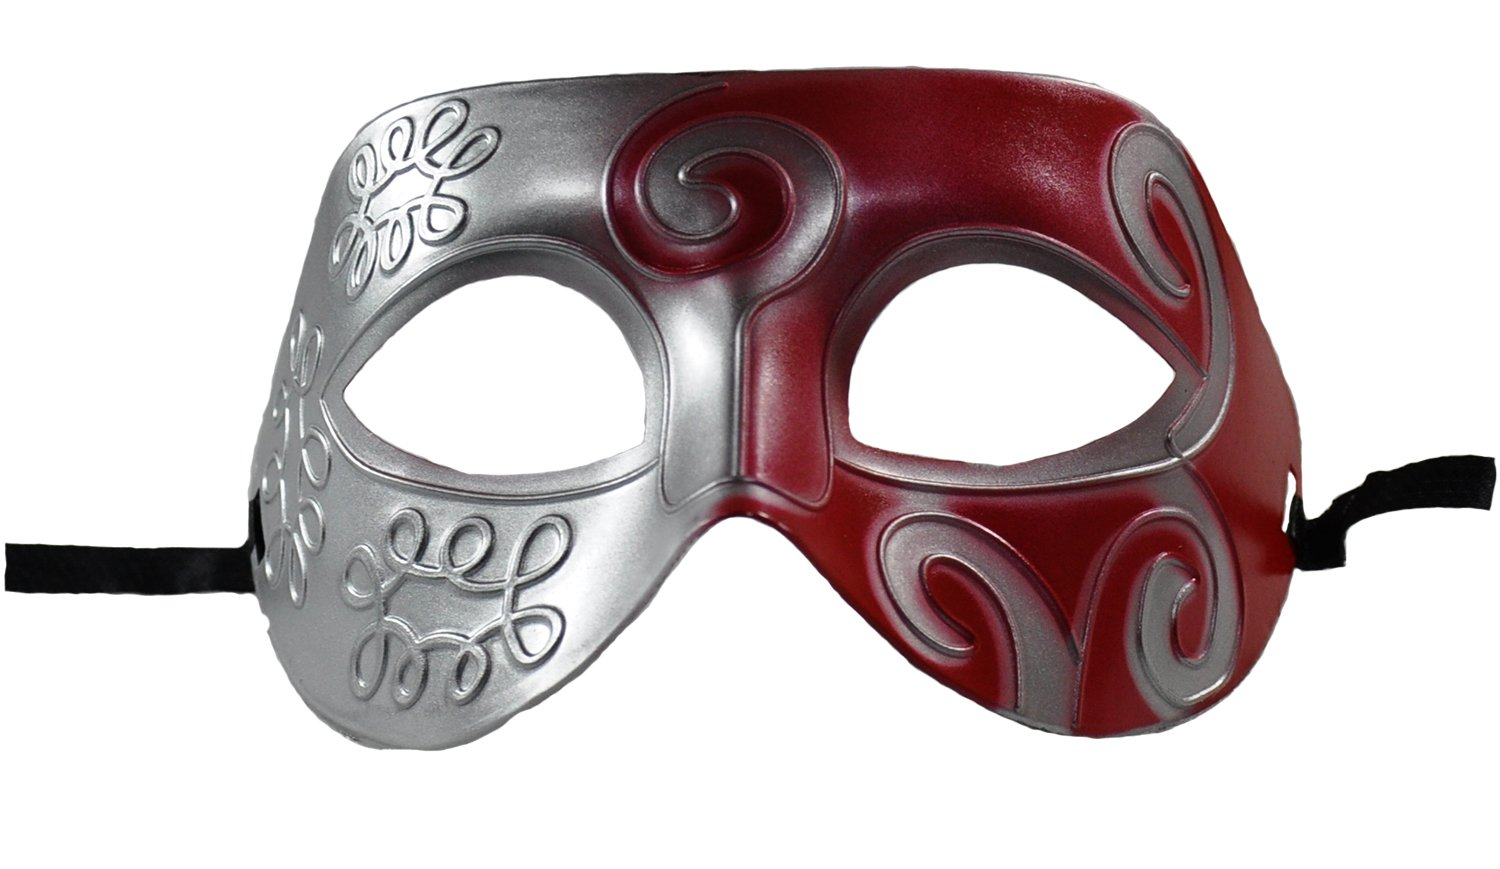 1Bay Men's Swirl Masquerade Mask With Body Jewelry Tattoos O/S Multicolor